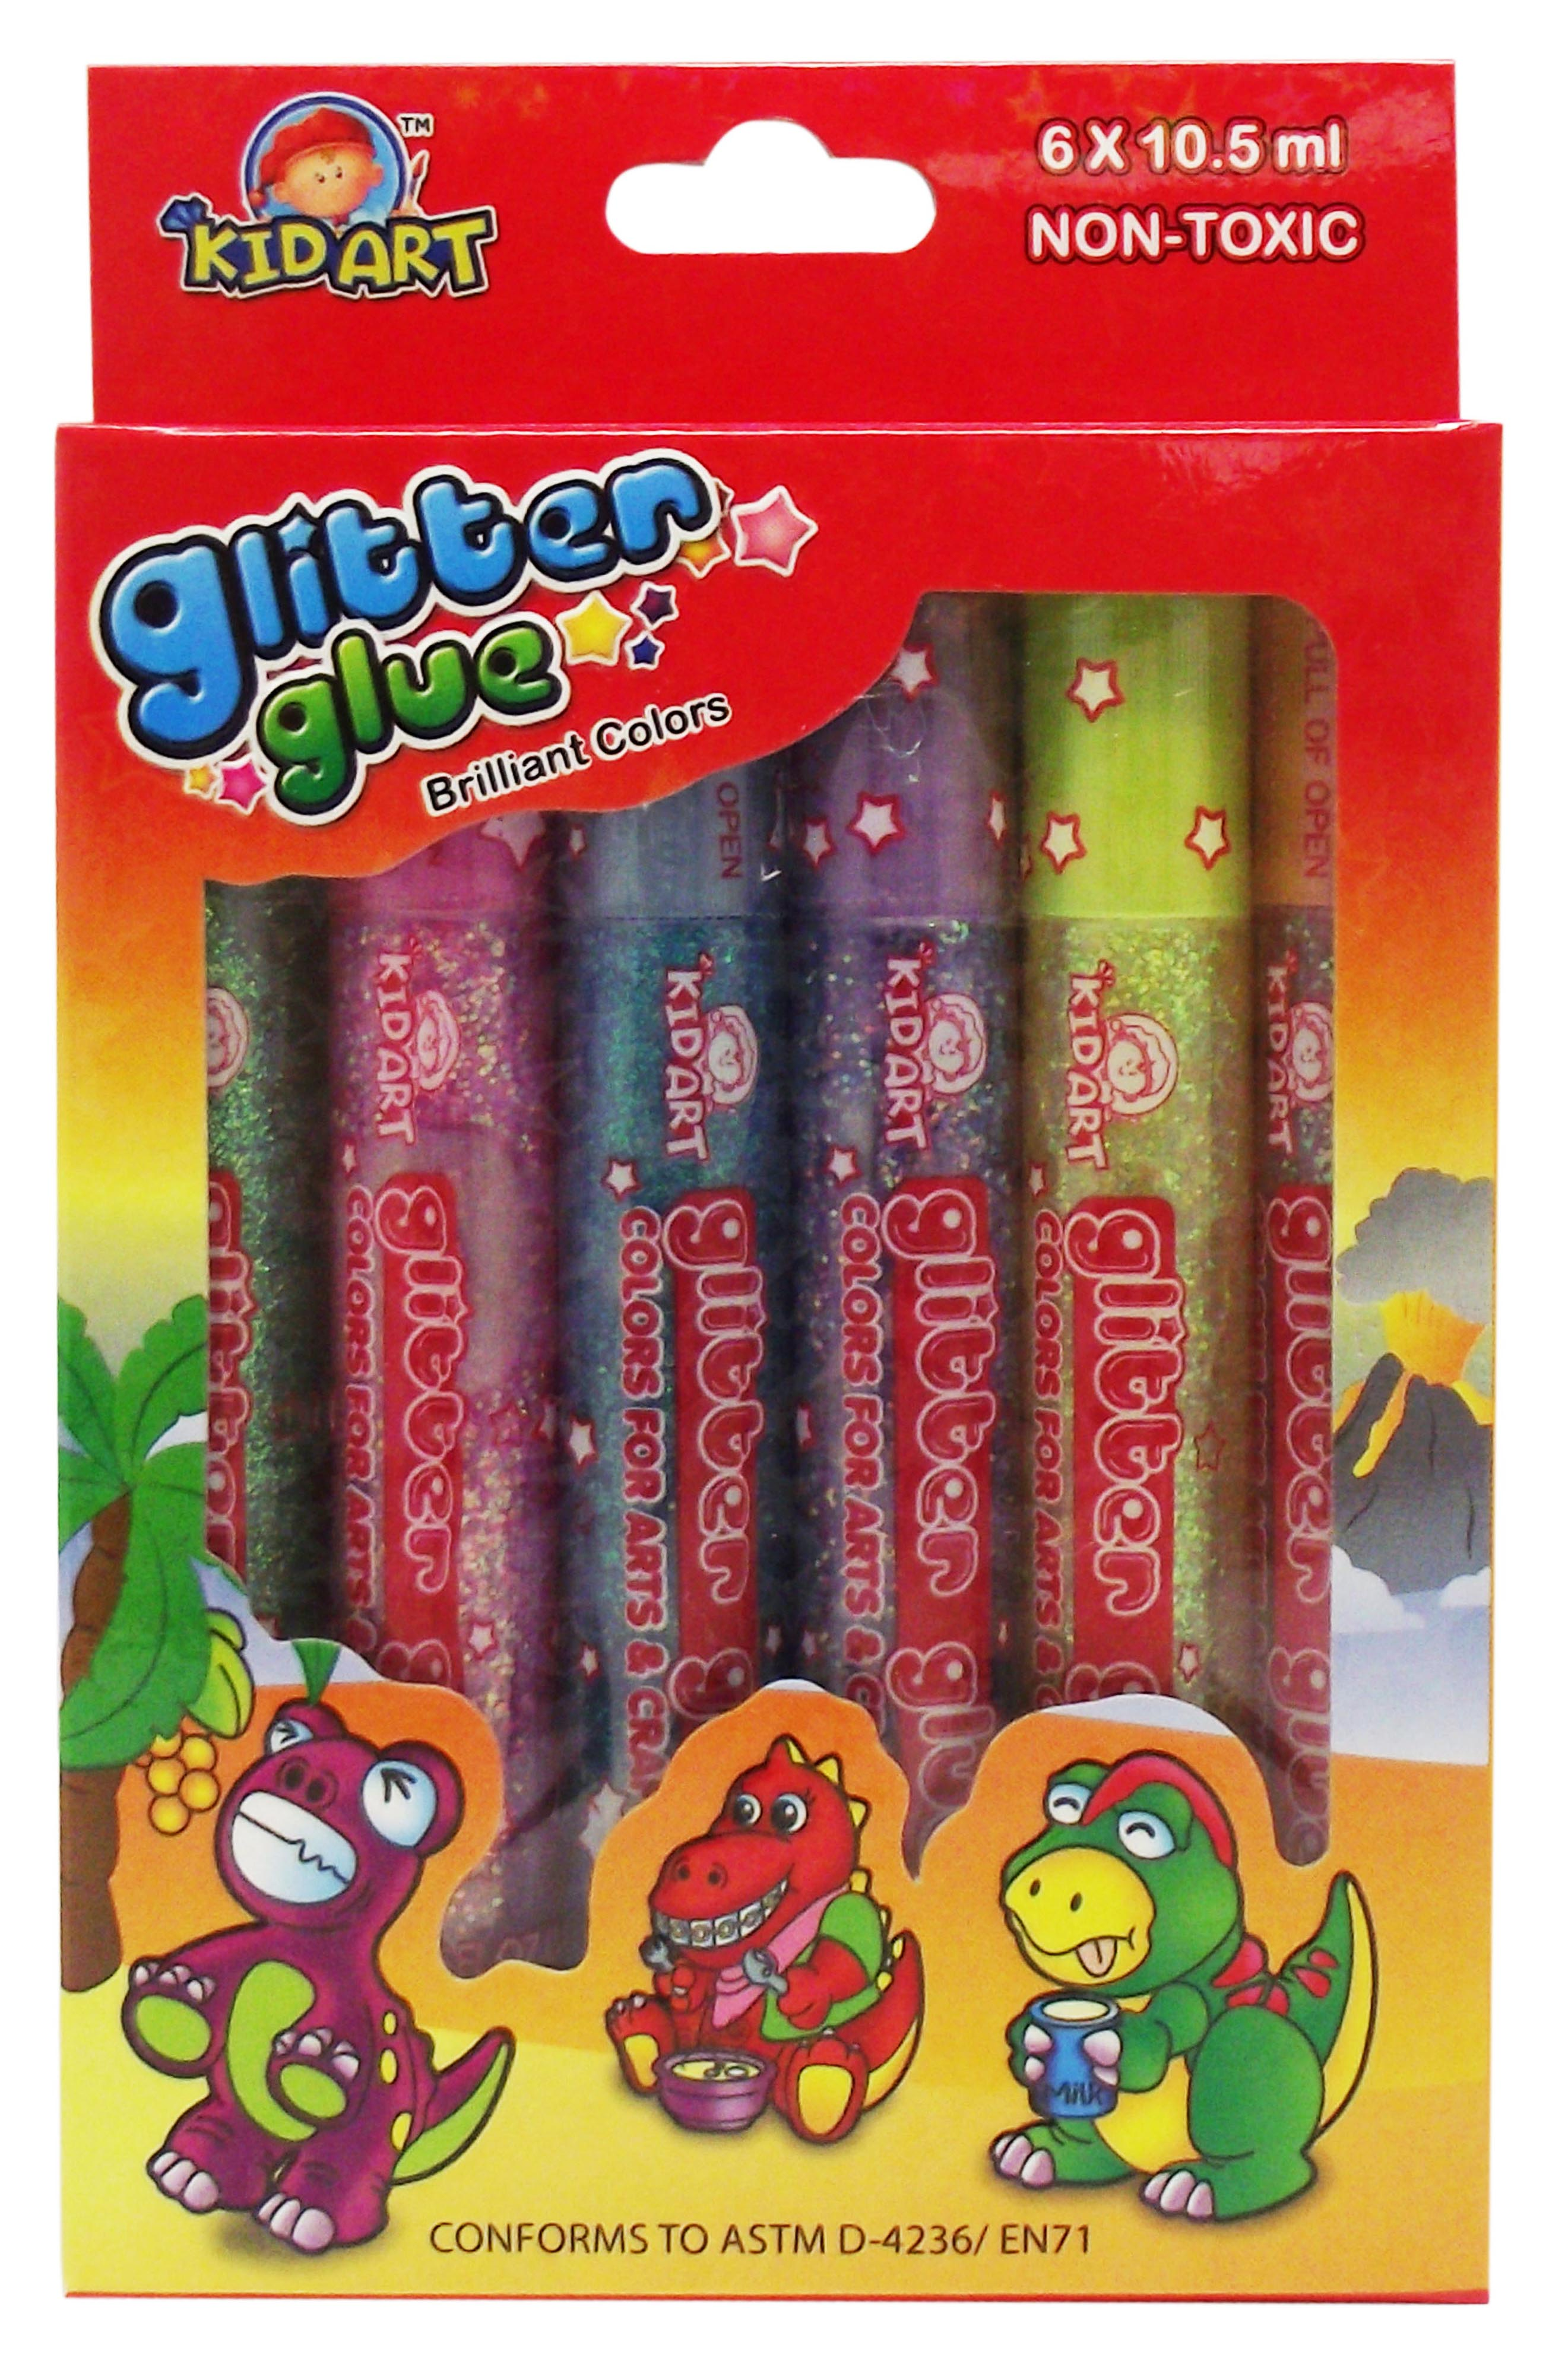 Glitter Glue Sparkle 10.5ml x 6 tubes